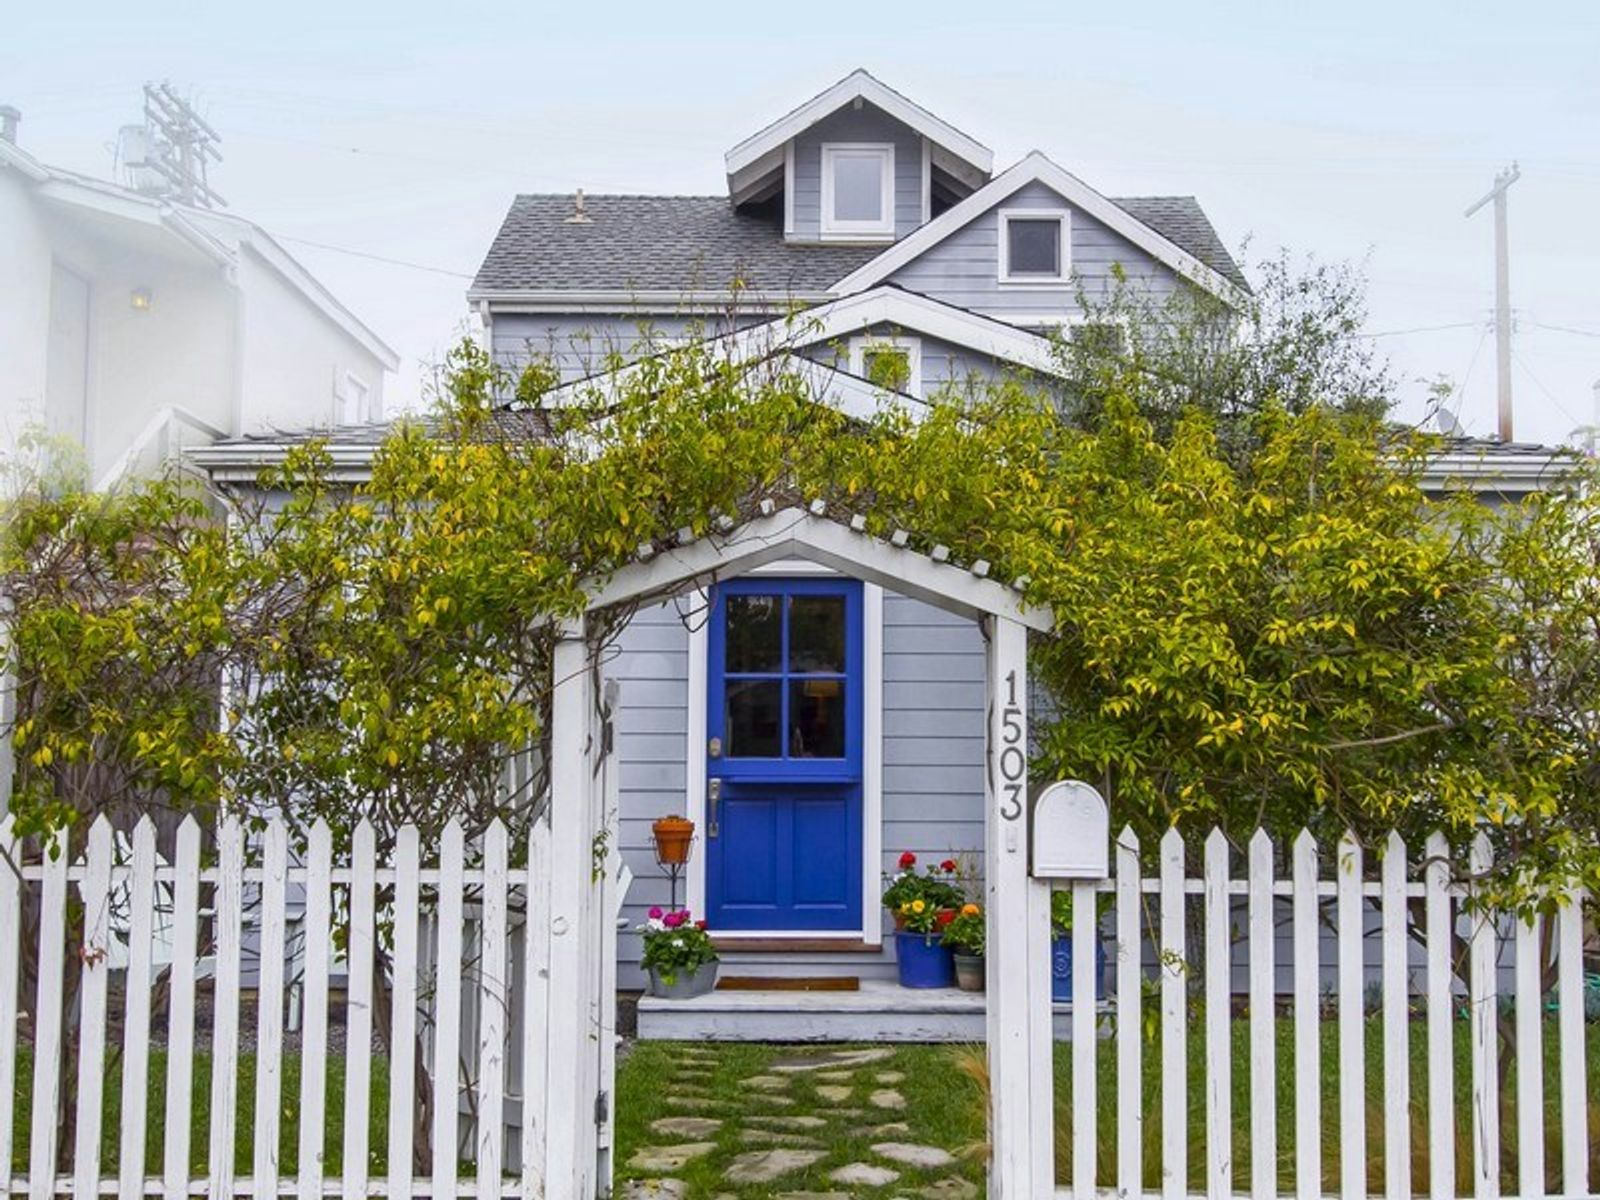 Two-Story Cape Cod Venice Beach House, Venice CA Single Family Home - Los Angeles Real Estate